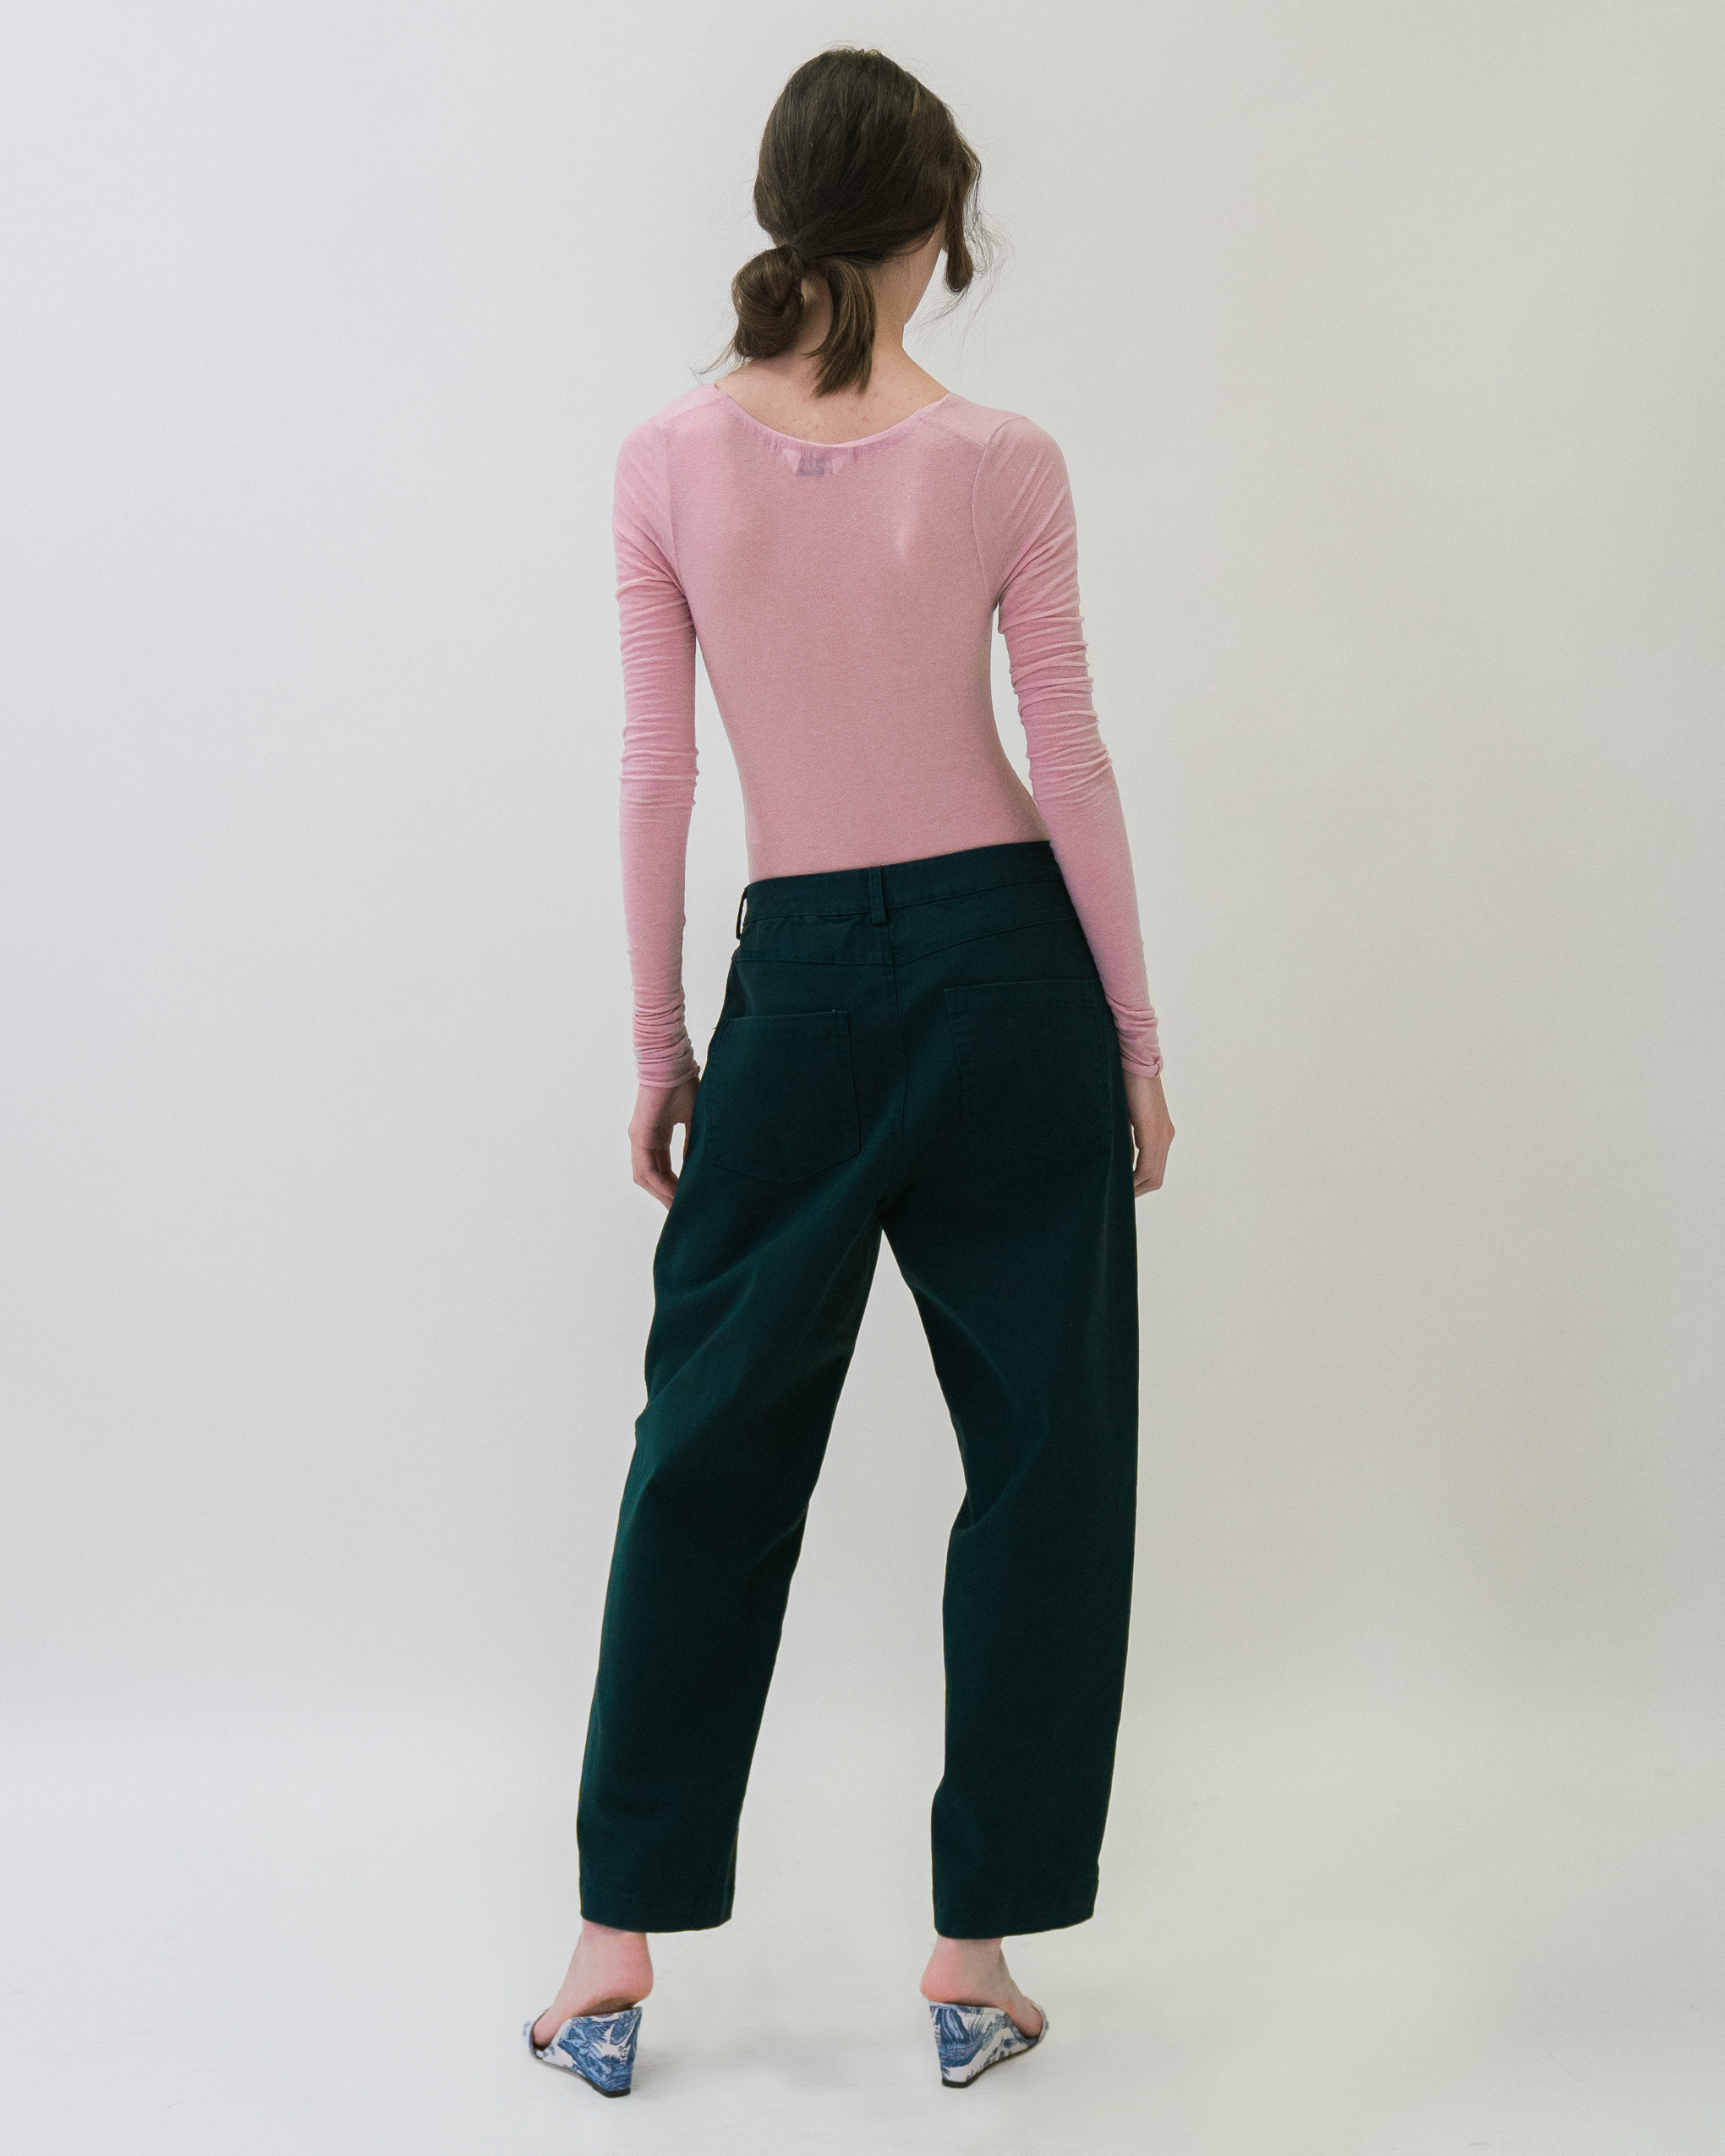 A woman is wearing pink colour front twist bodysuit and blue-green trousers.